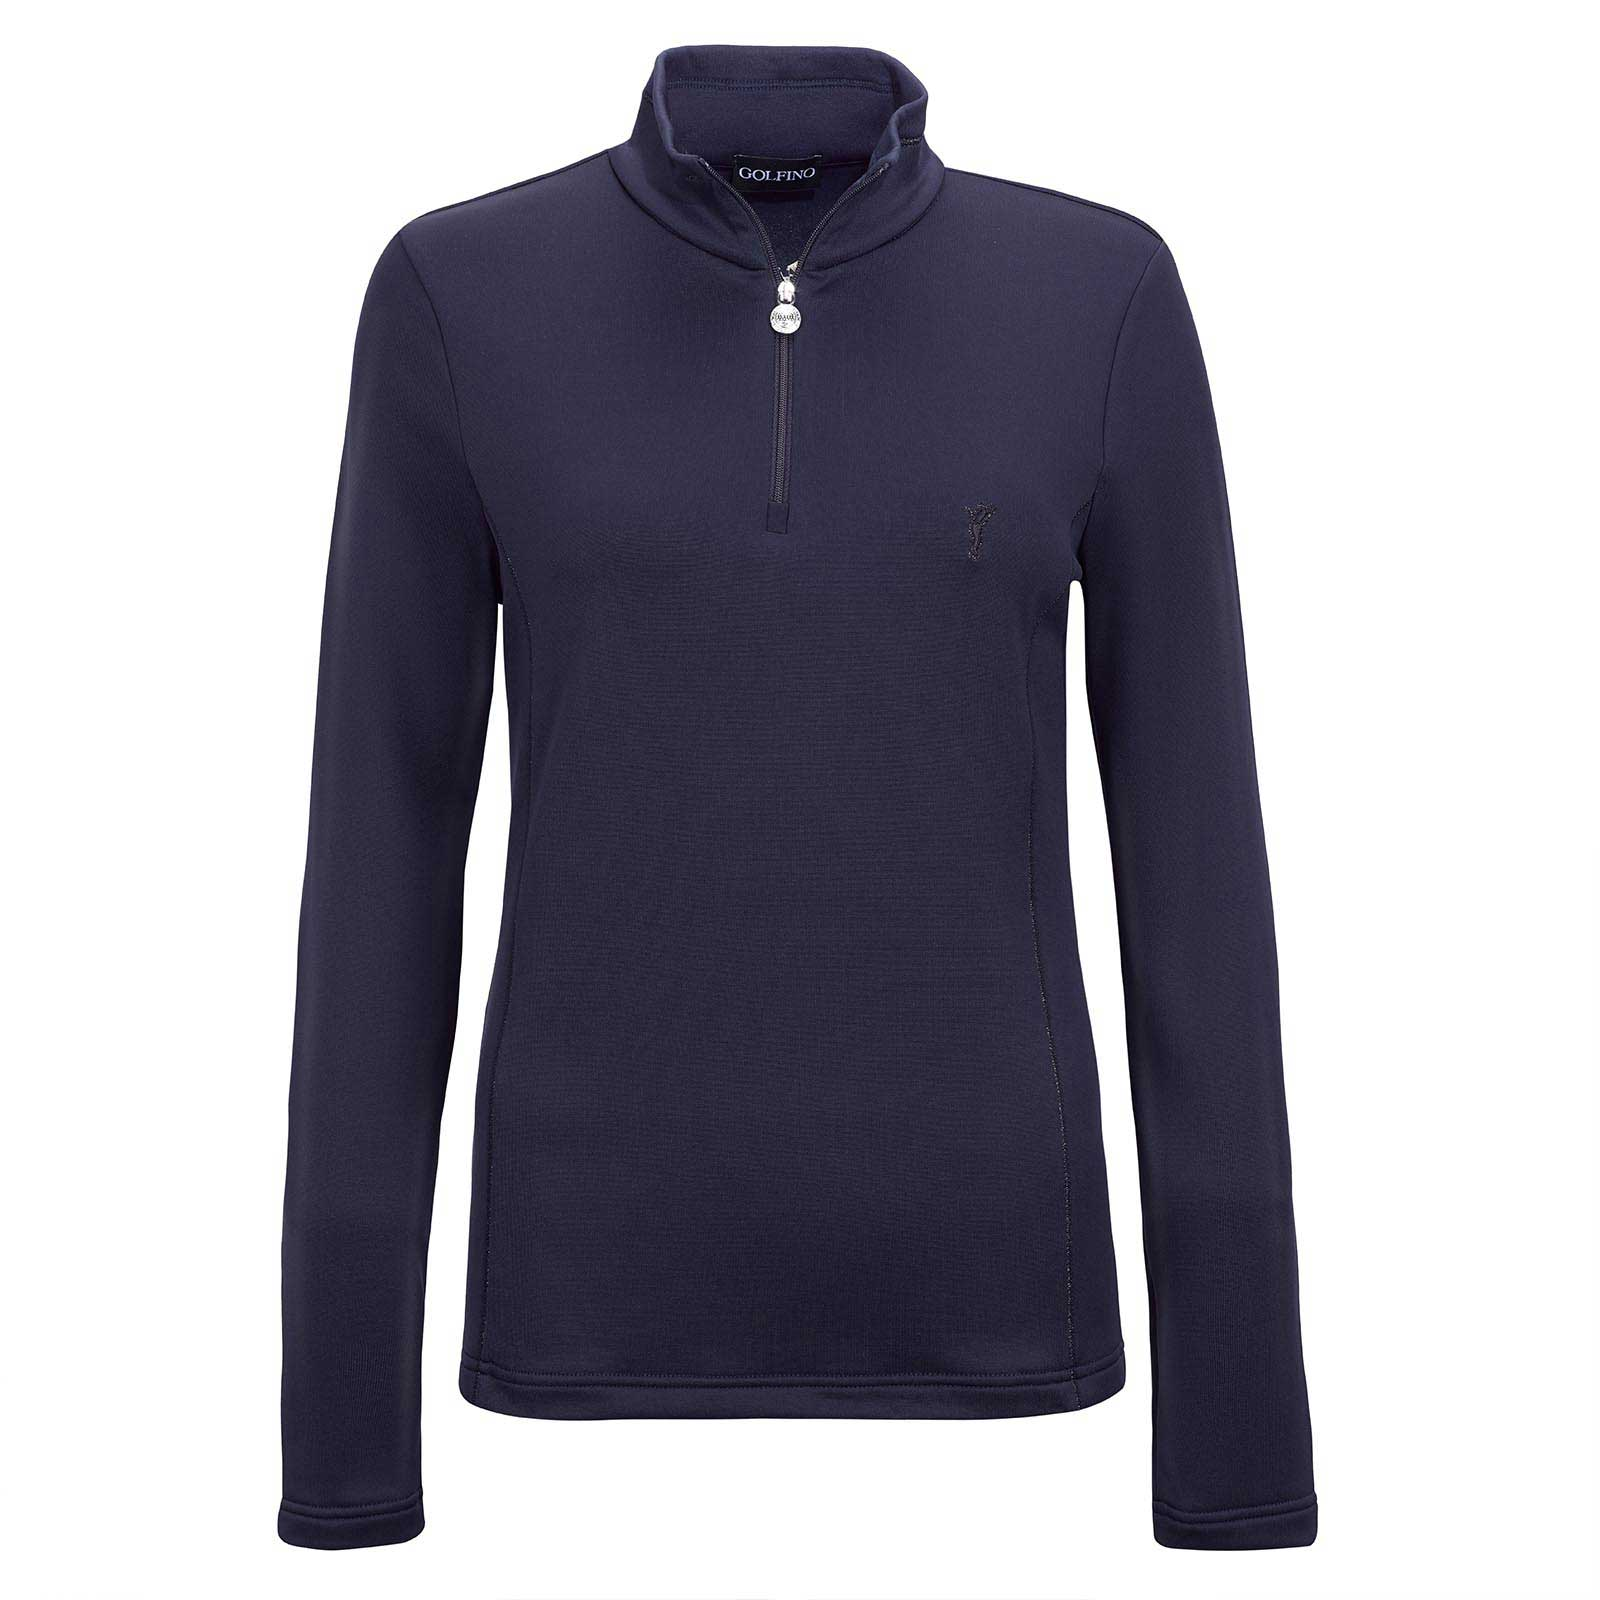 Ladies' long-sleeve techno stretch golf troyer with metallic stitching details